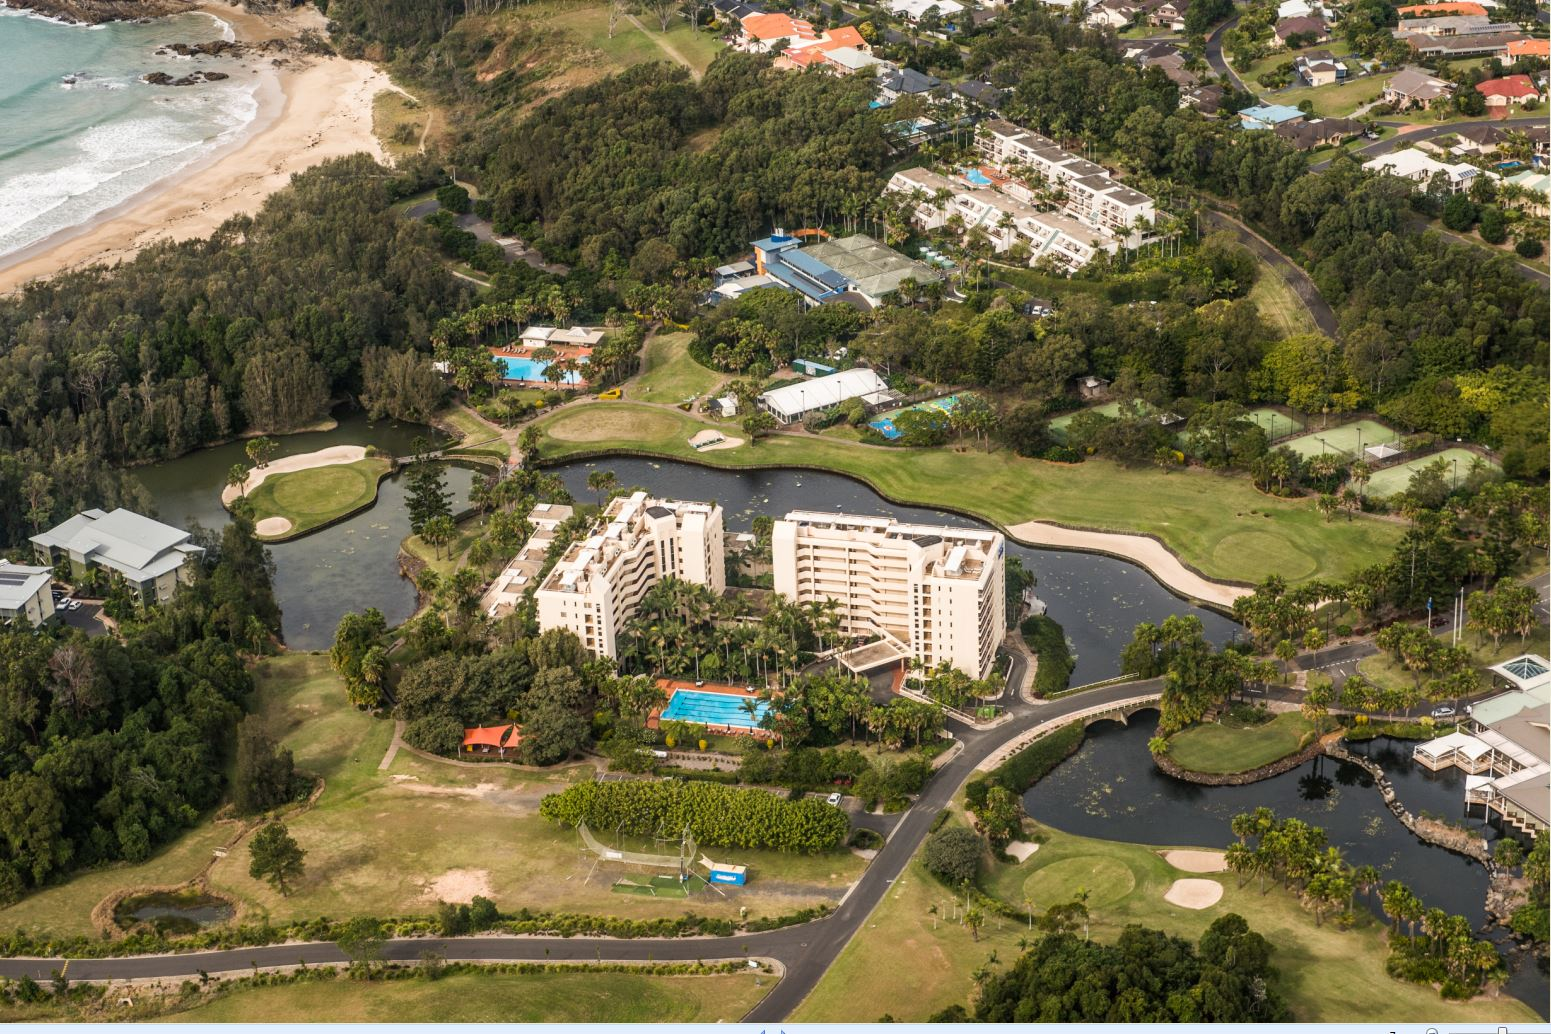 Pacific Bay Resort has been purchased by Peter Montgomery, owner of the Bonville Golf Resort.